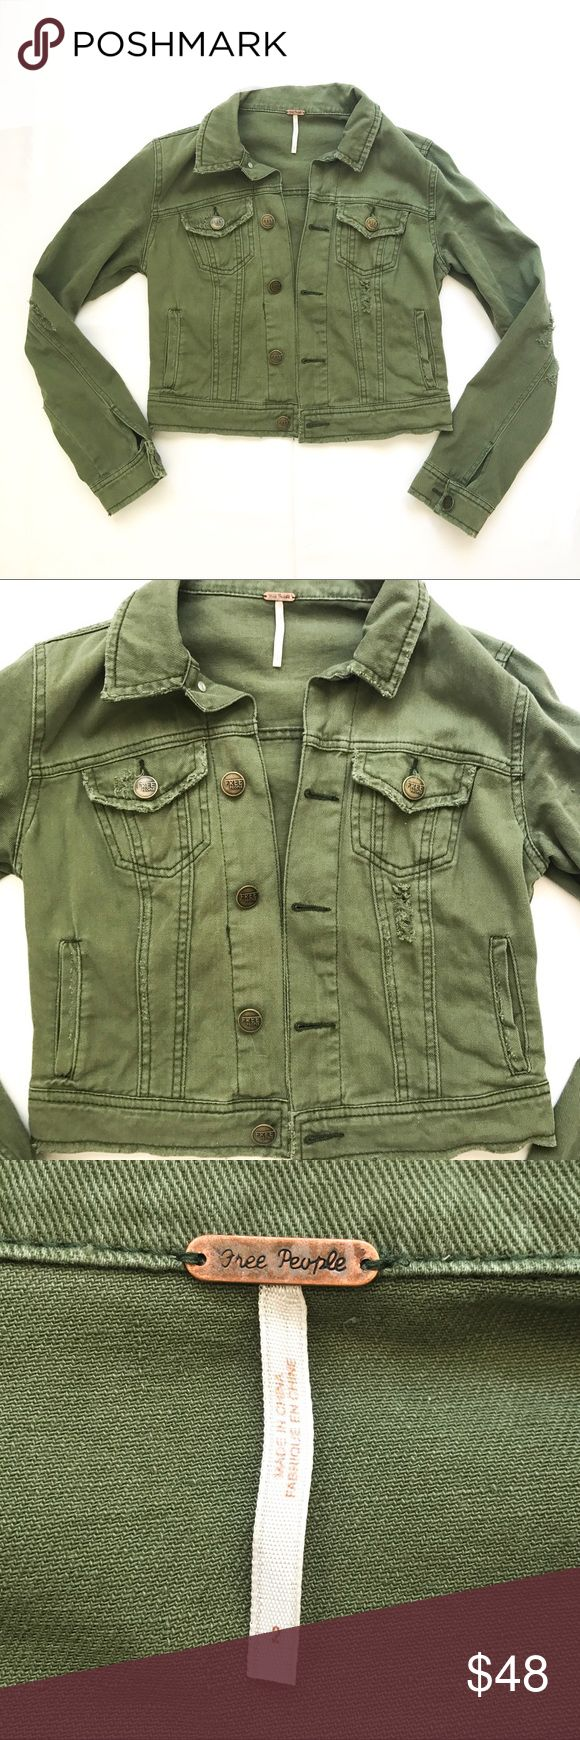 Free People distressed olive jacket Free People distressed olive jacket Free People Jackets & Coats Jean Jackets